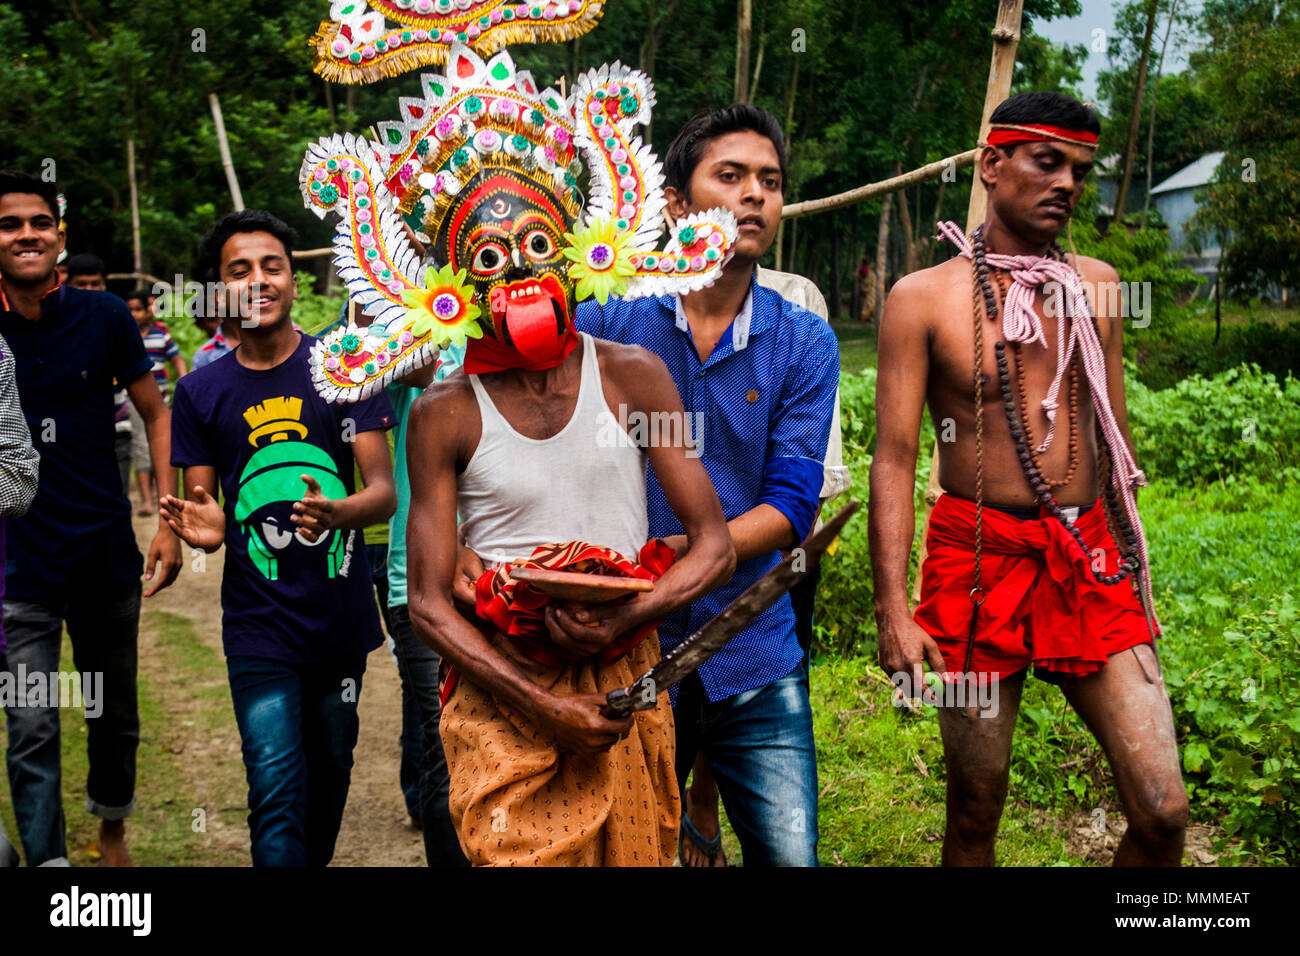 A group of Hindu devotees perform the rituals of Charak Puja festival at Tangail in Bangladesh on April 14, 2018. - Stock Image